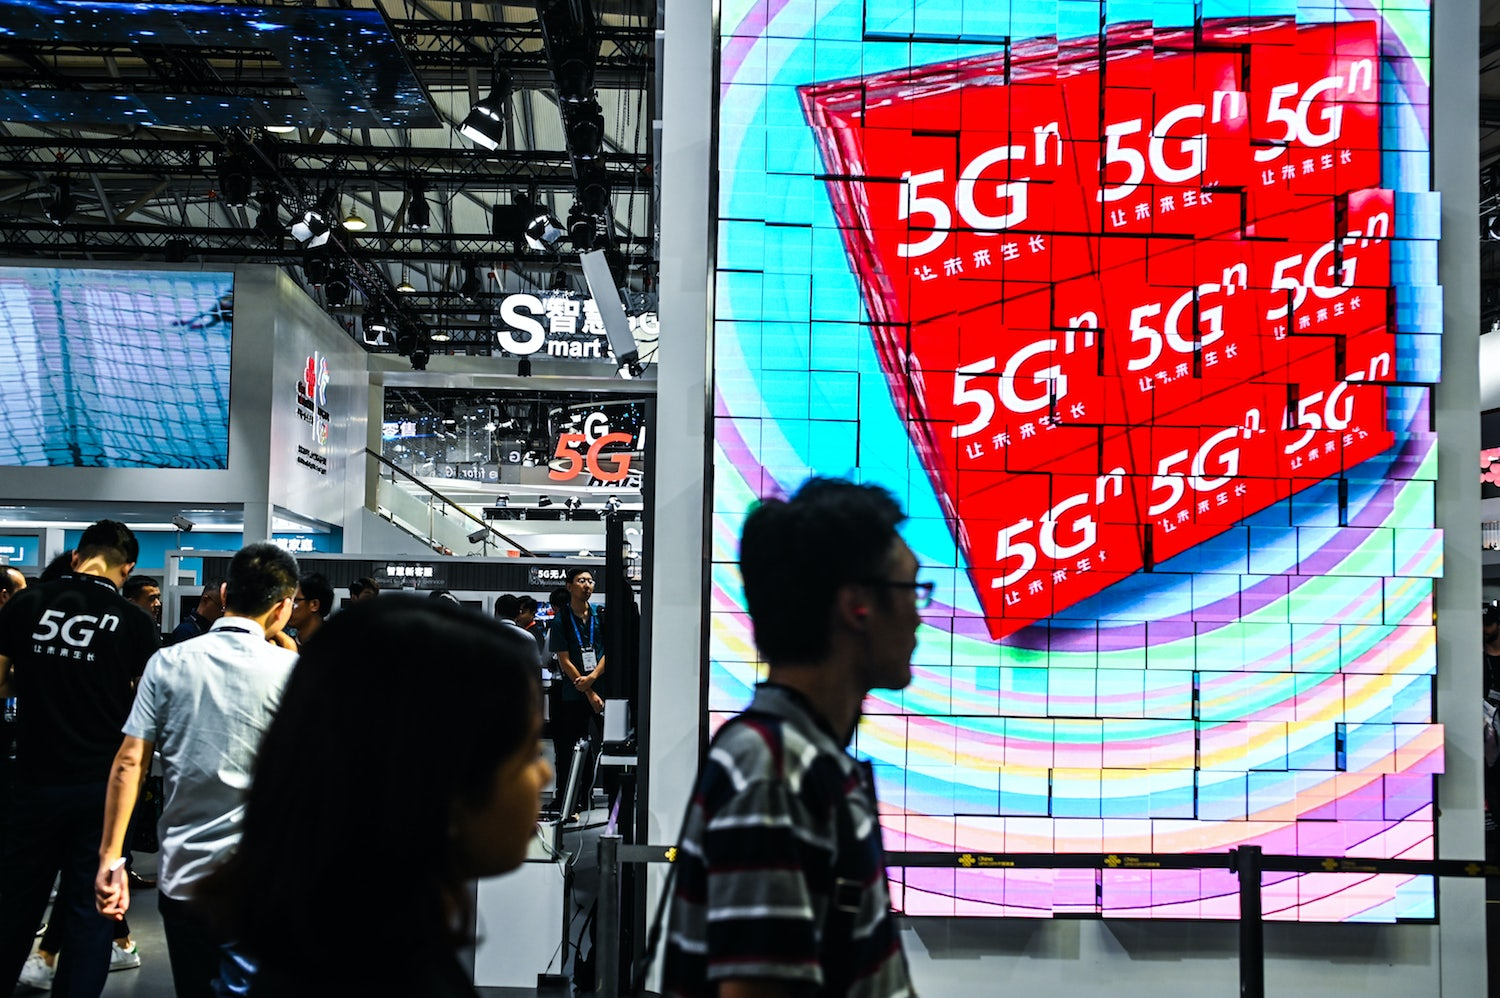 5g%20beurs%202.jpg?auto=format&fit=max&h=1080&ixlib=php 1.1